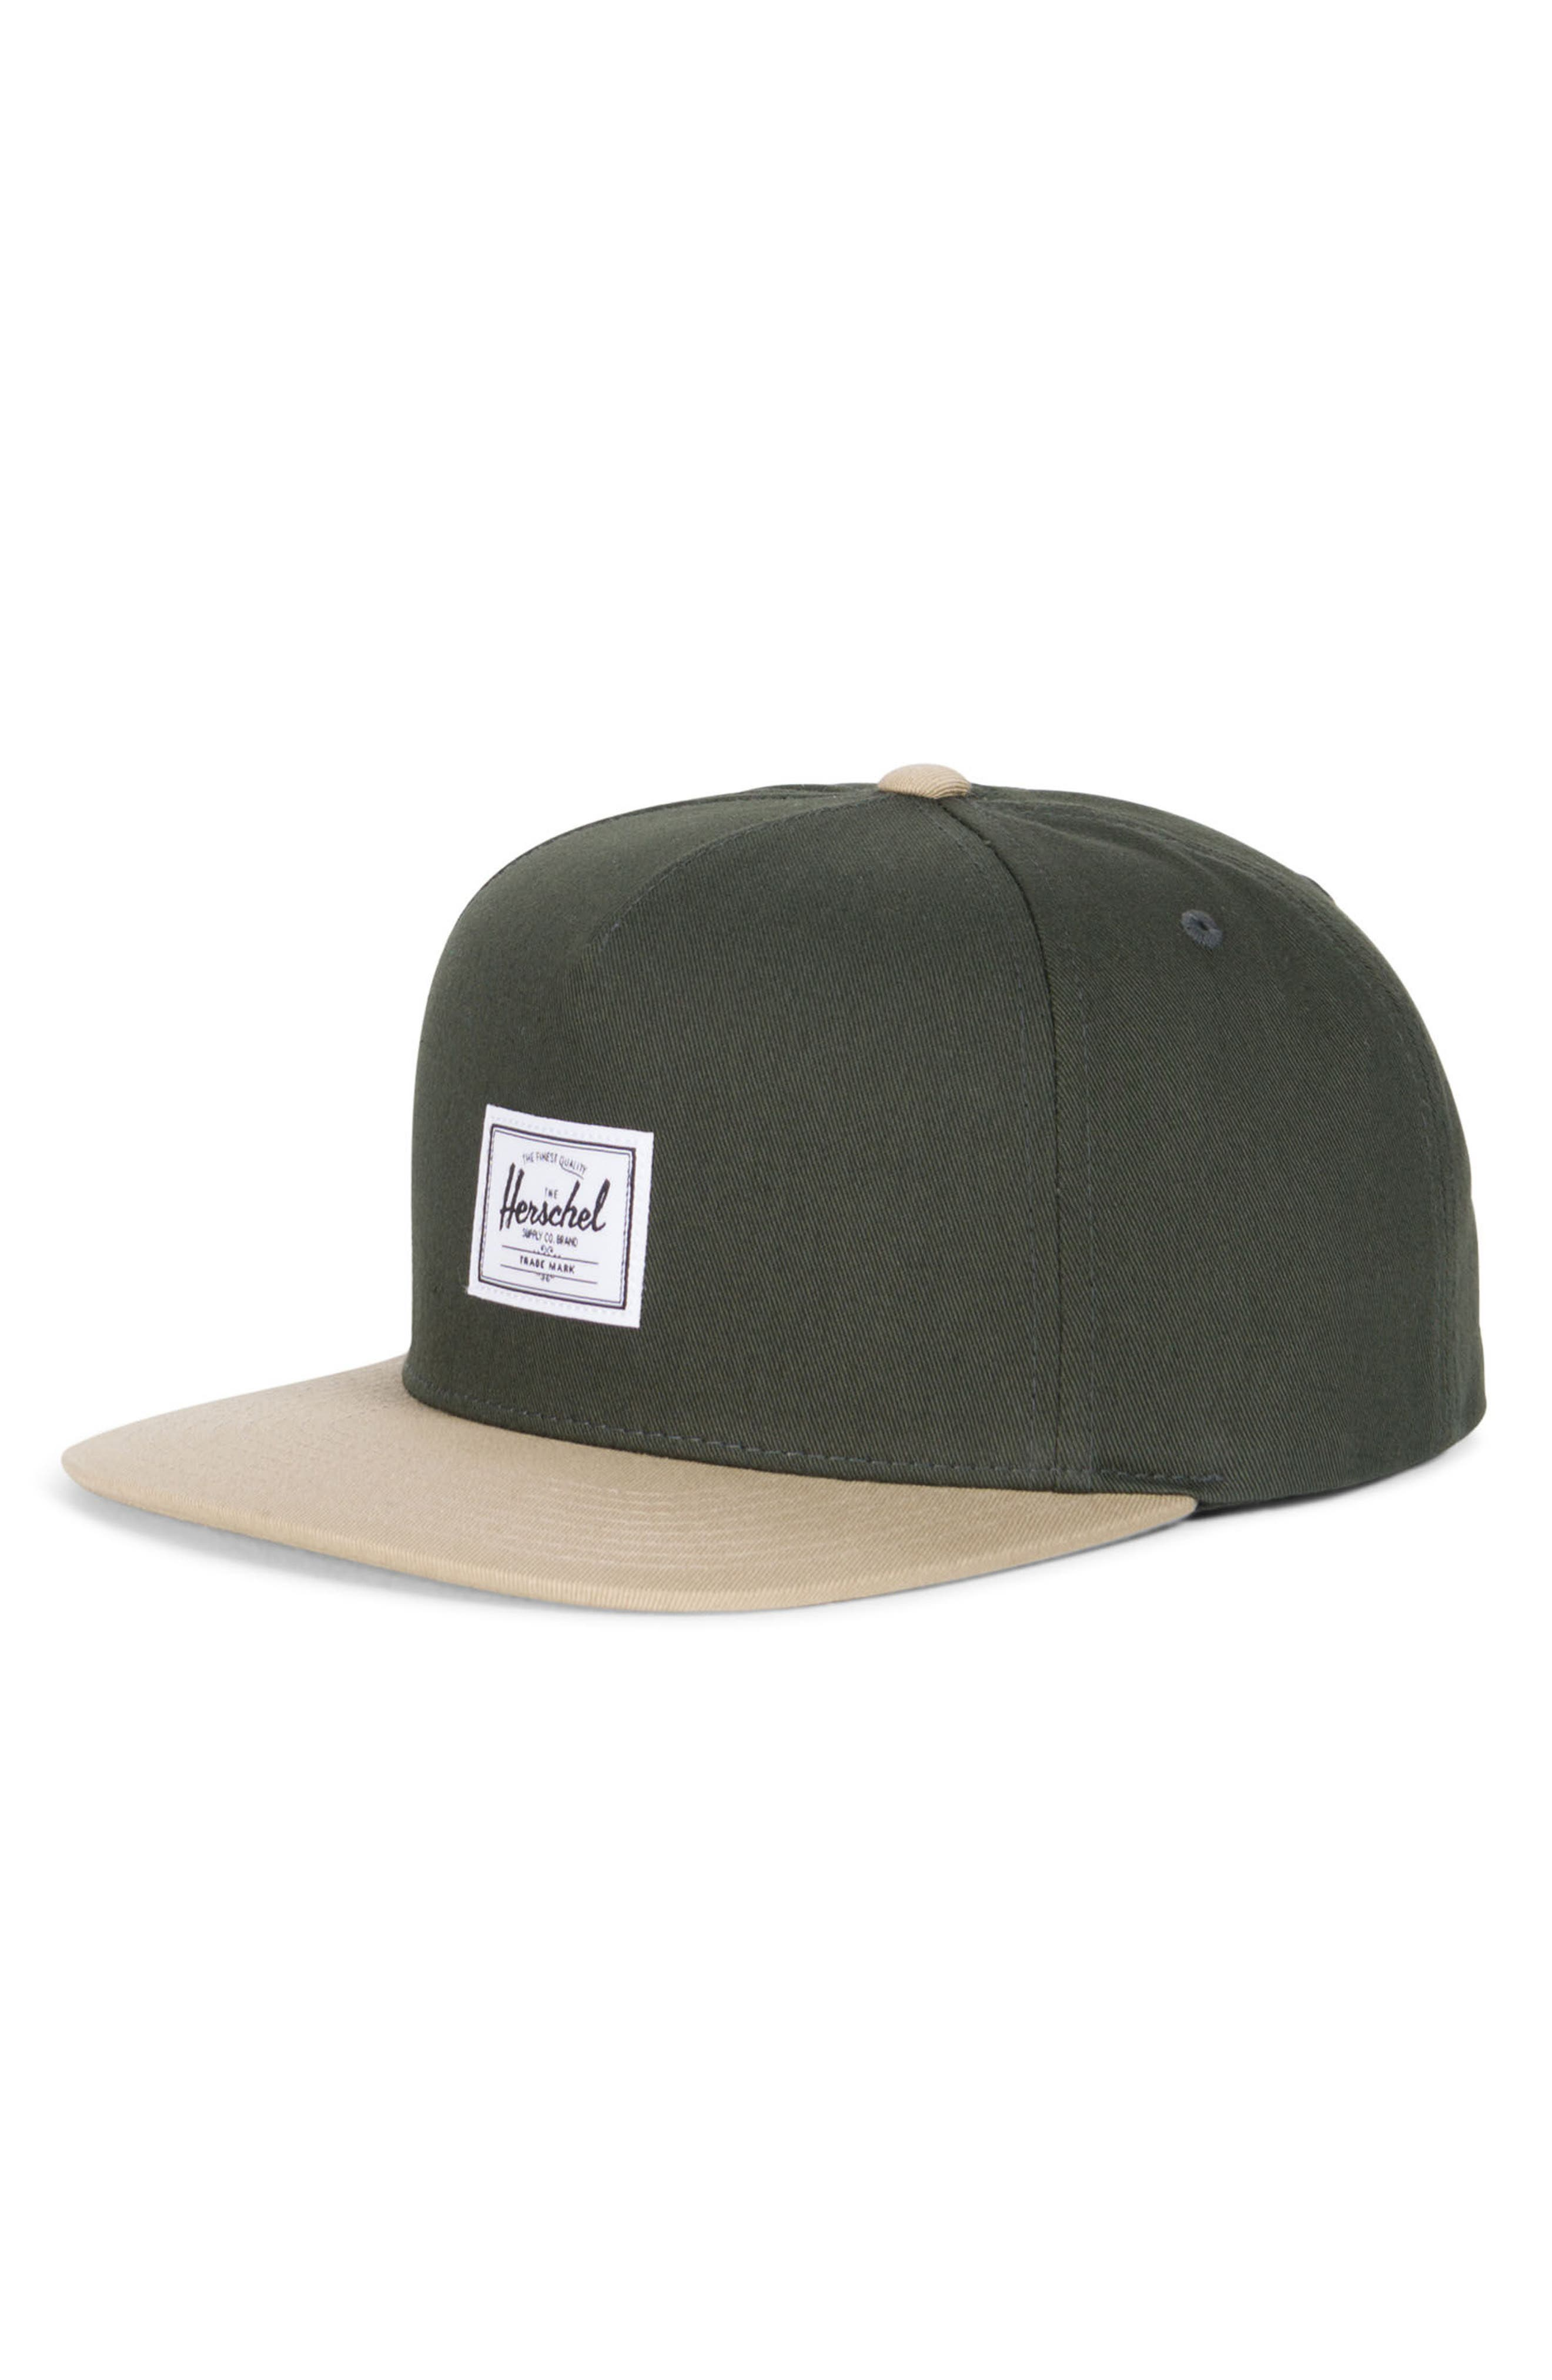 Alternate Image 1 Selected - Herschel Supply Co. Dean Snapback Baseball Cap